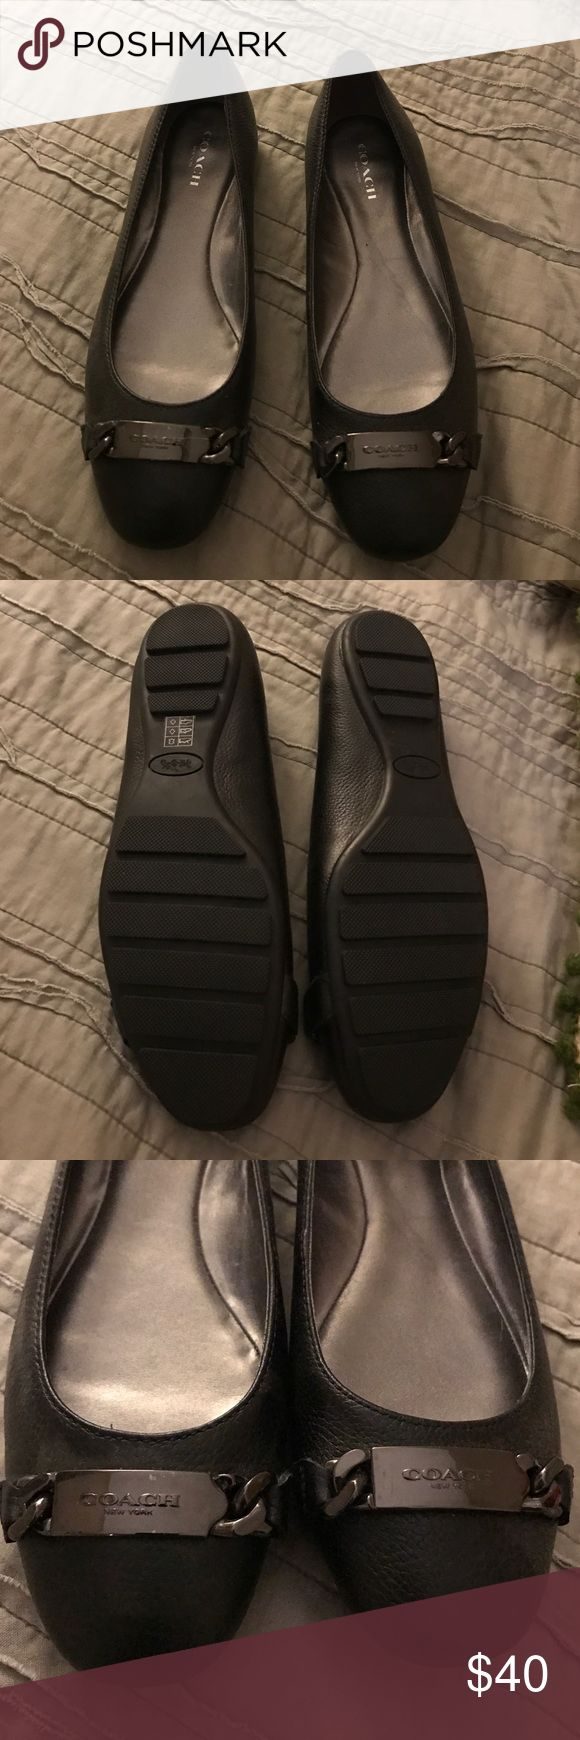 Coach flats-- never worn! Gorgeous Coach flats, never worn. In perfect condition. The perfect black flat every girl needs in her closet! Coach Shoes Flats & Loafers